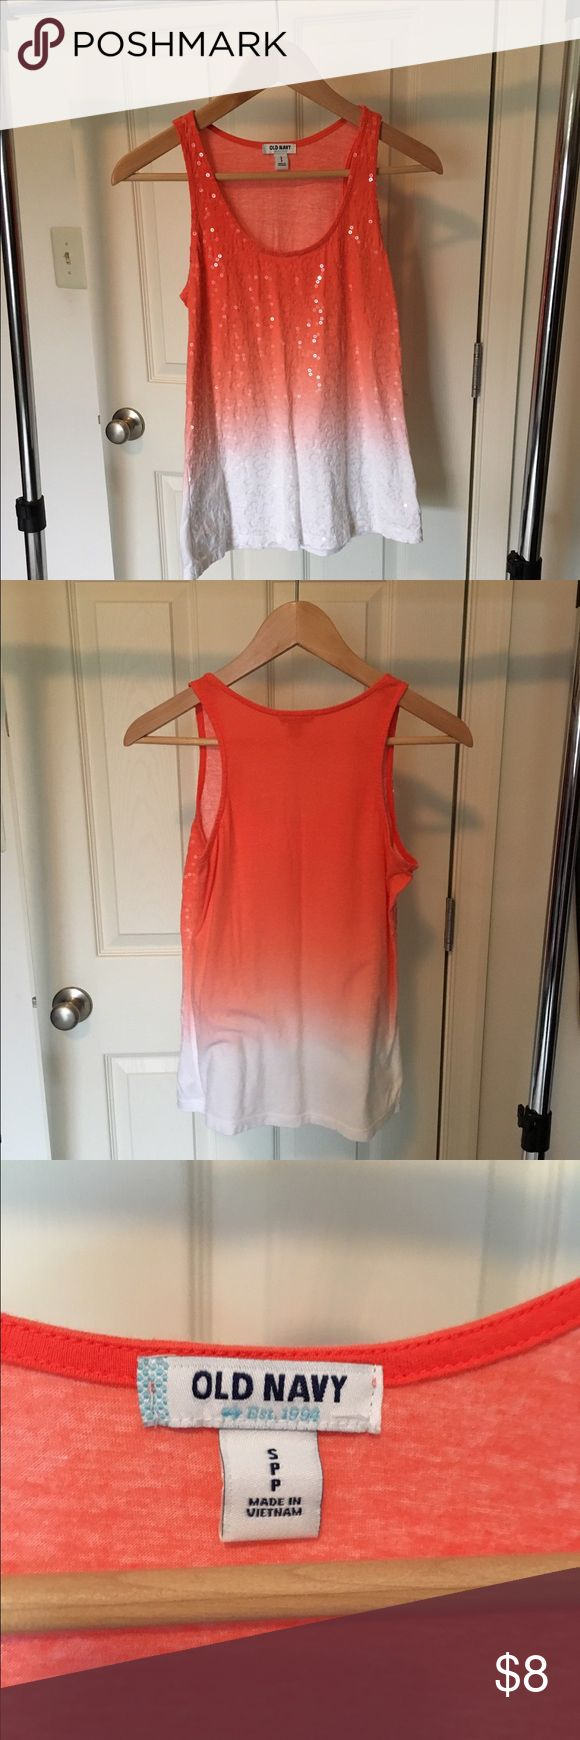 Old Navy Color / white Ombré Sequin tank top Brand: Old Navy Color: Coral White Ombré  Size: S Condition: very good, like-new  All used clothing items are from my personal closet. I take care of my clothing and wash/dry according to tags. I check each piece for tears, holes, stains, etc. Any damage will be listed, but, I am human so it's possible that I could miss something small!  Please be kind & contact me if there are any discrepancies and I will work with you to make it right :)  Sorry…